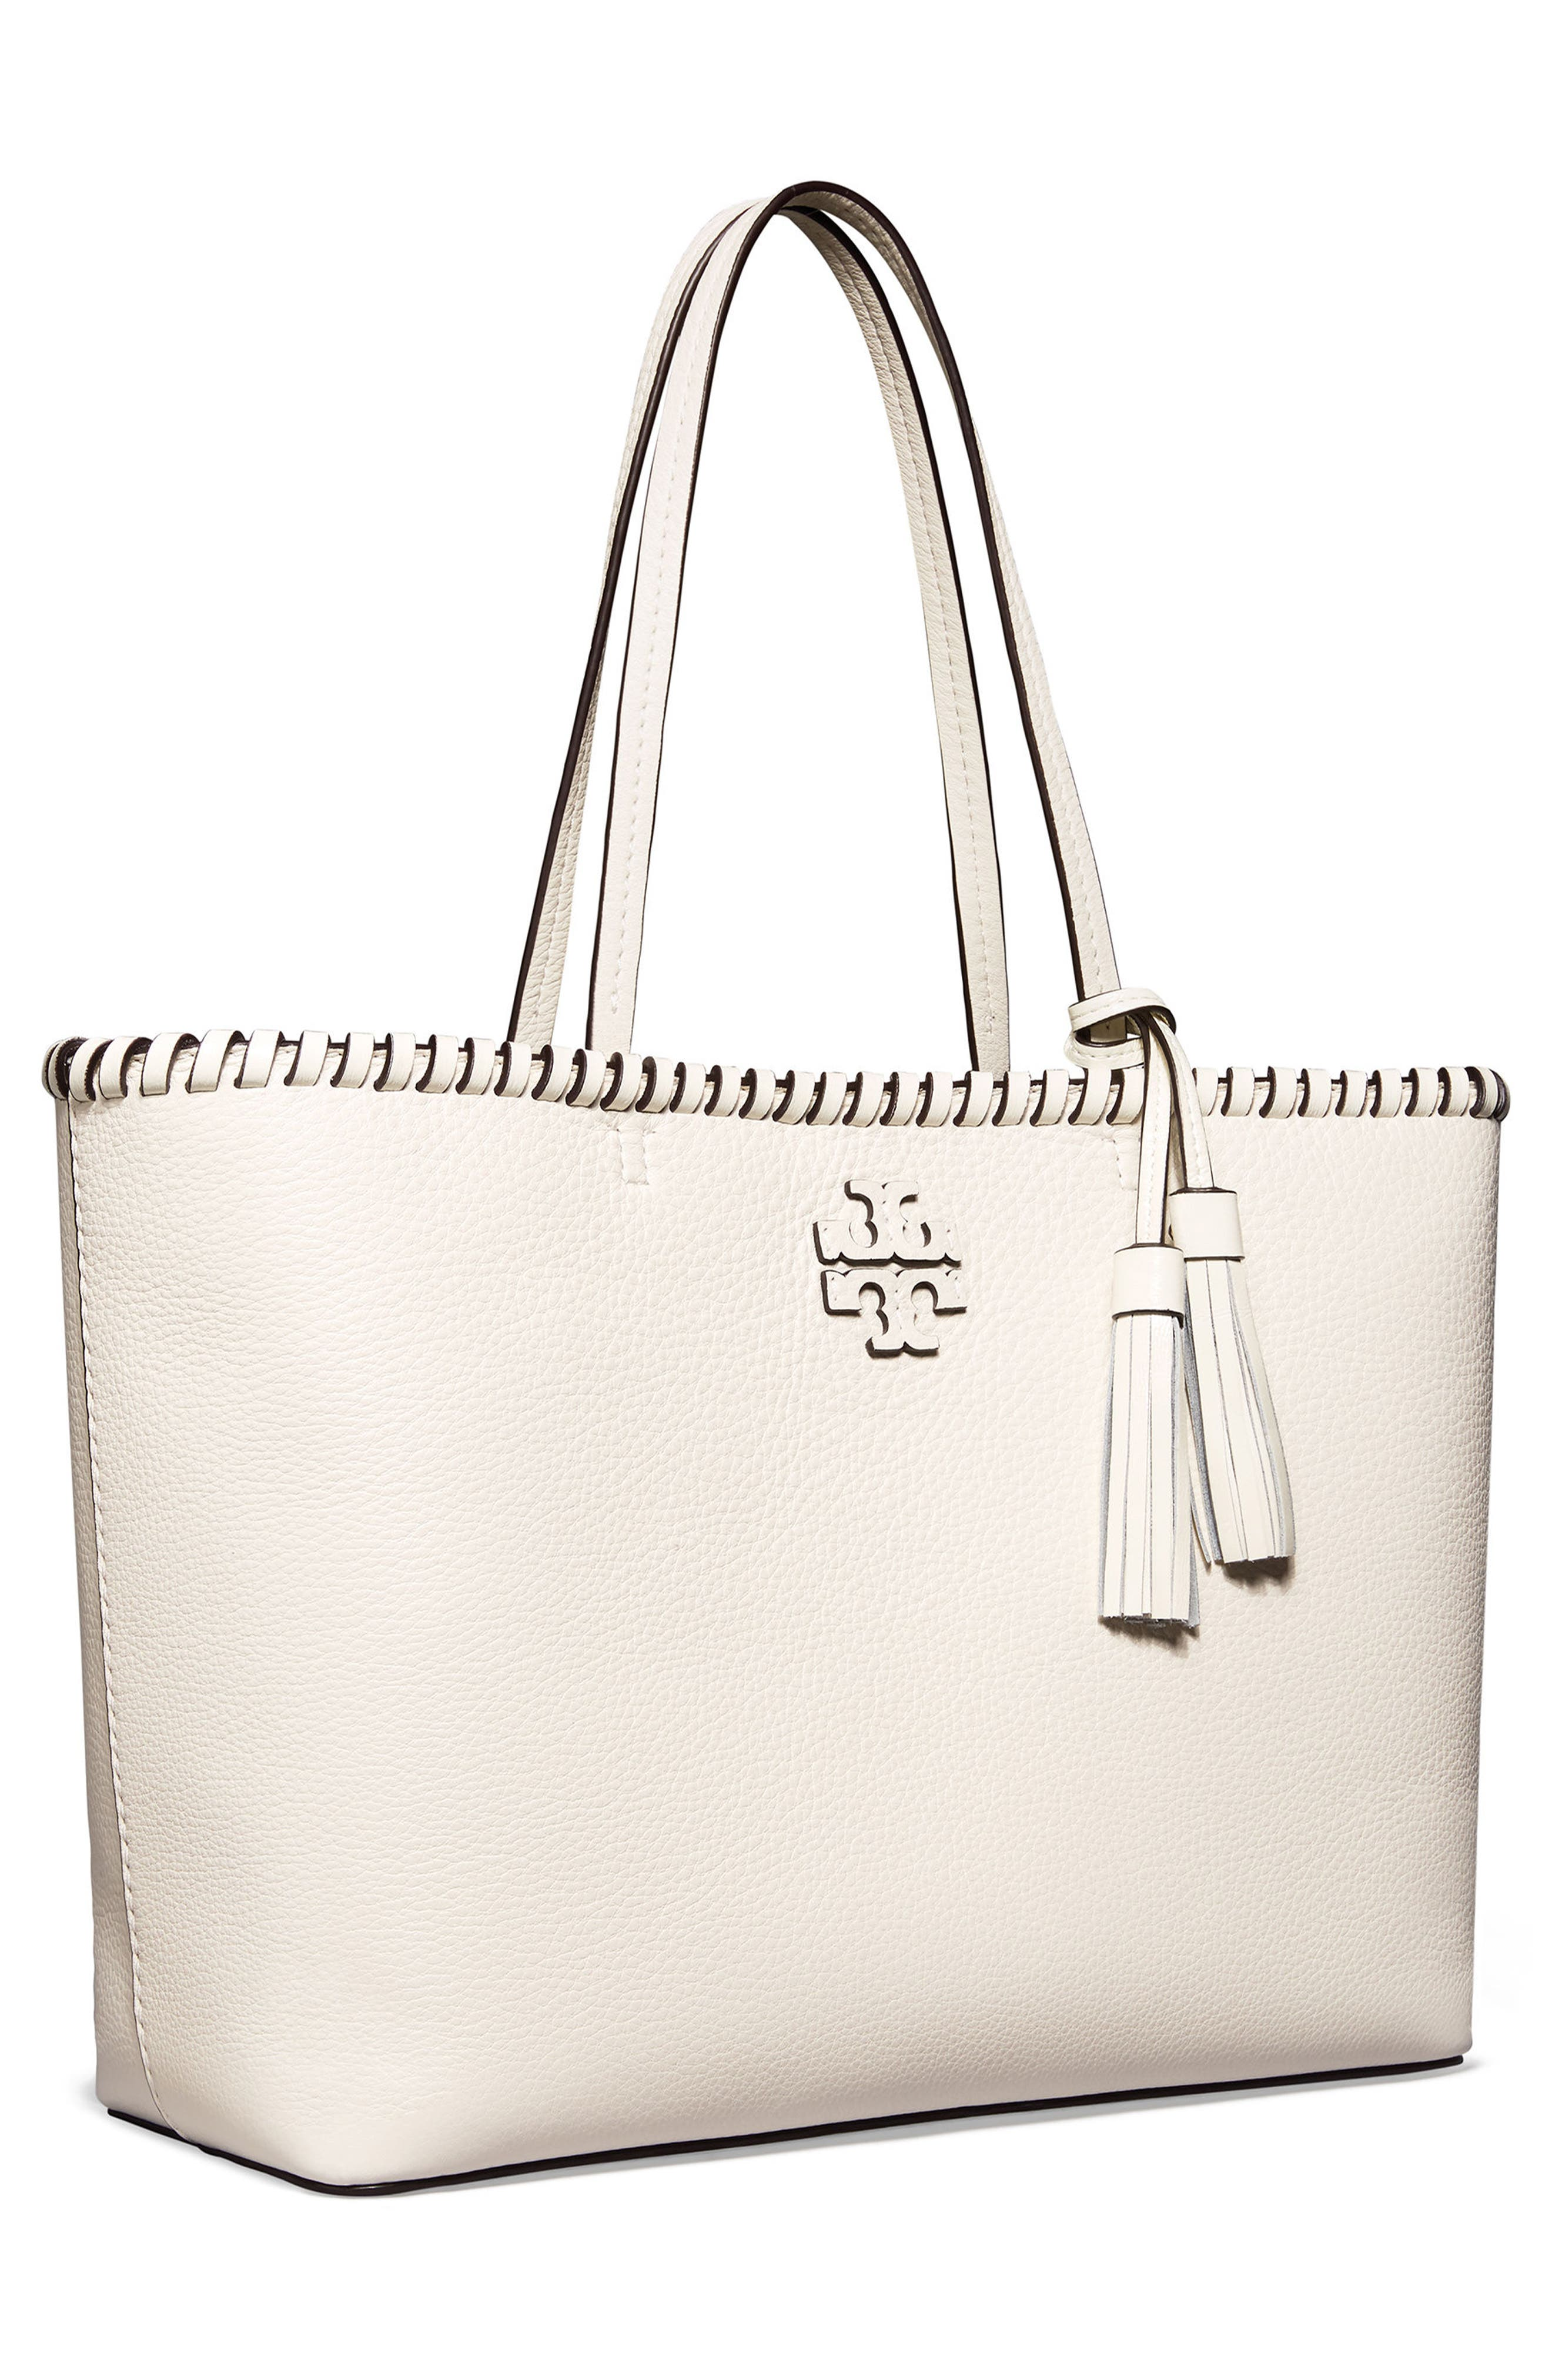 McGraw Whipstitch Leather Tote,                             Alternate thumbnail 2, color,                             100